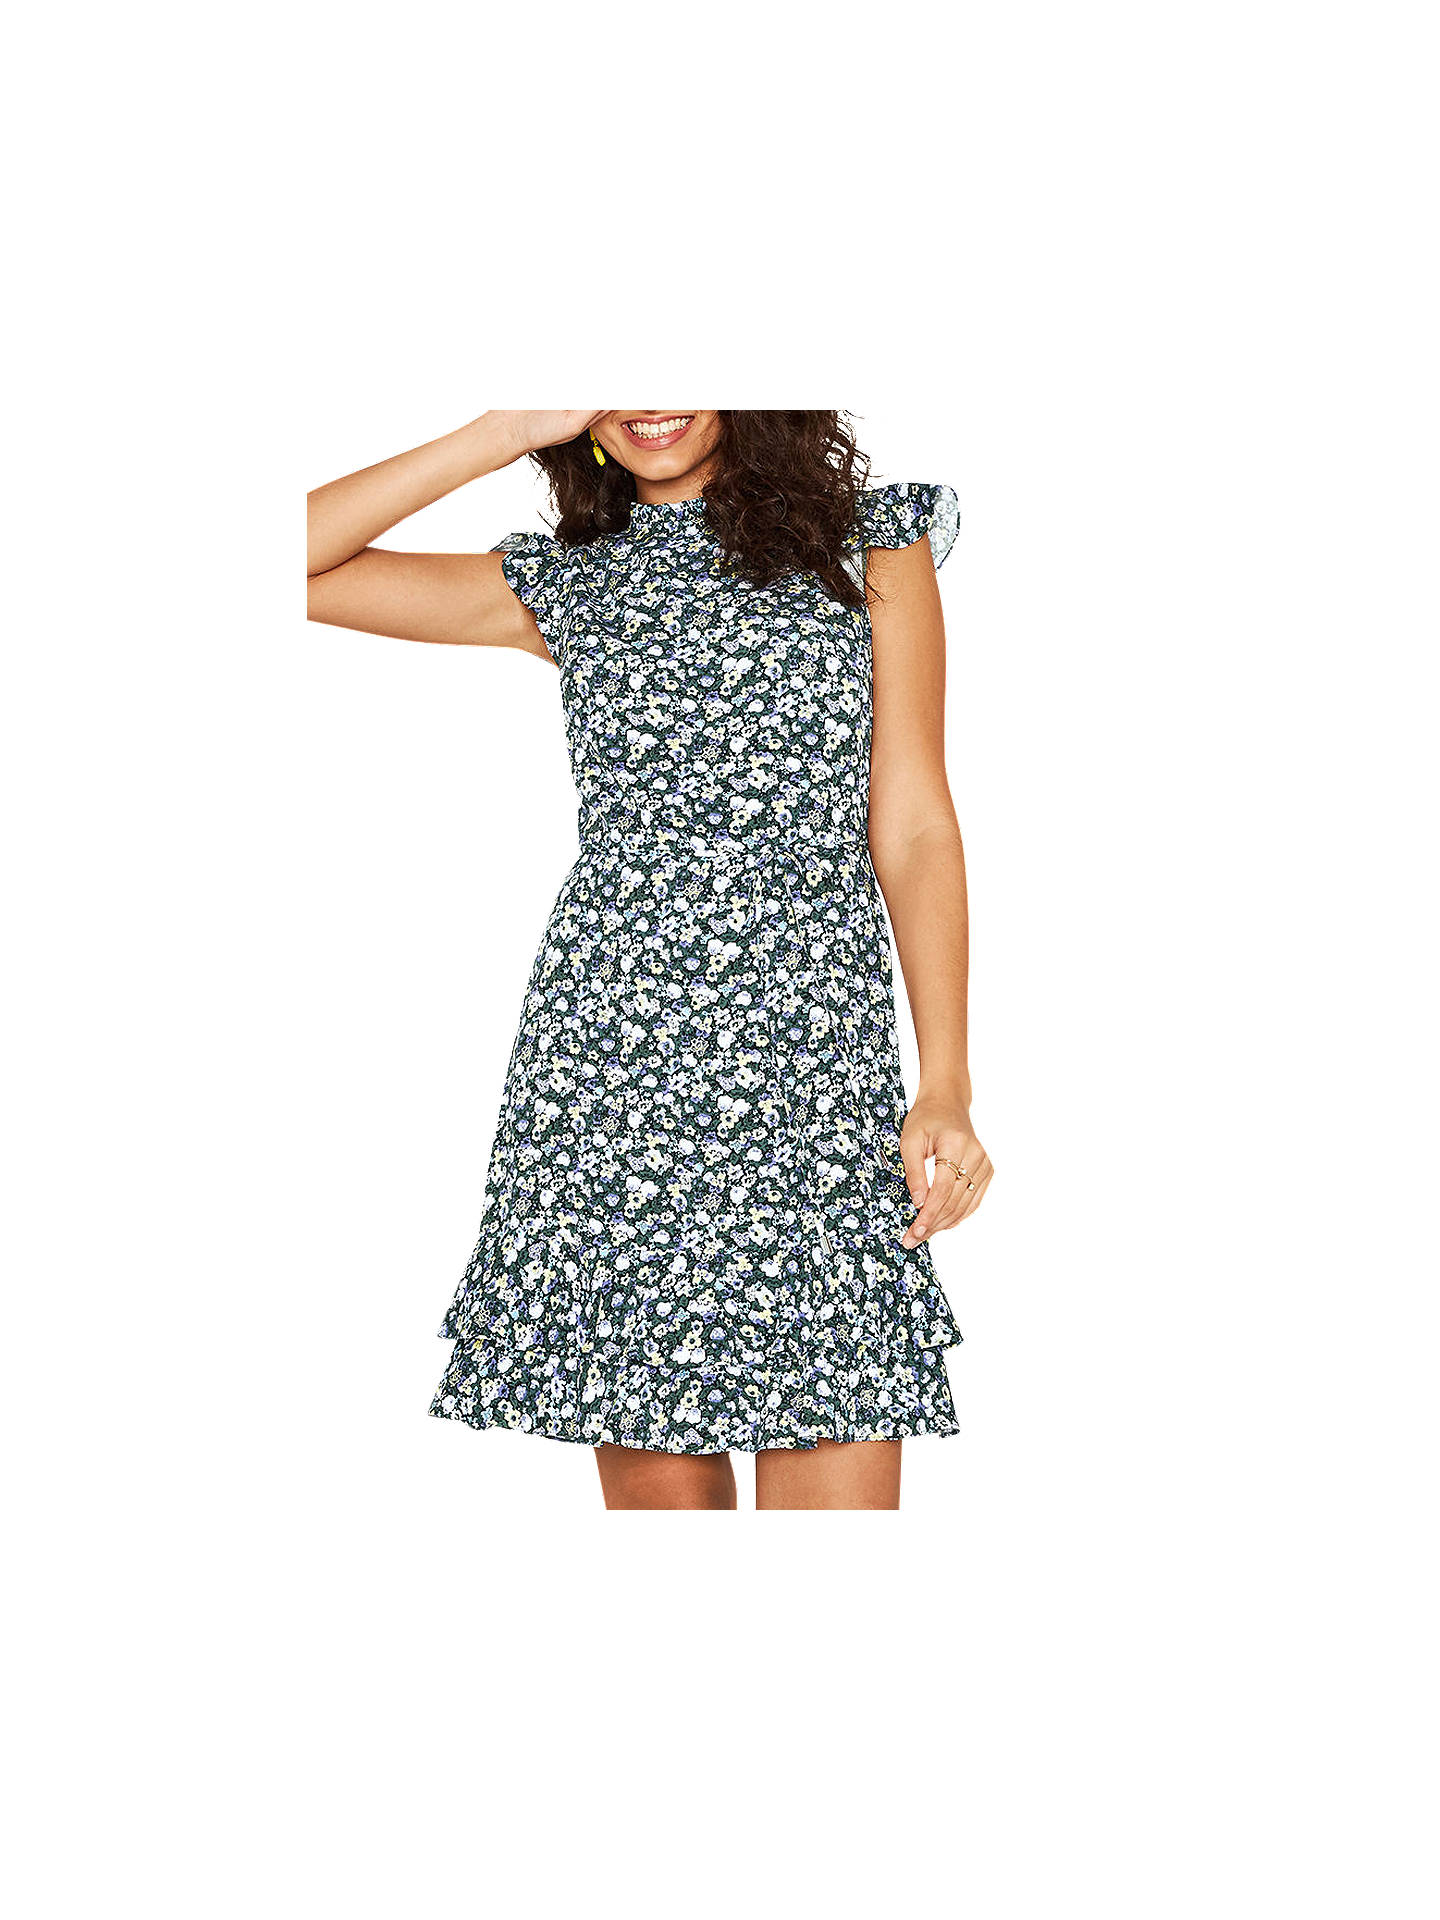 392b633d3a3f Buy Oasis Ditsy High Neck Skater Dress, Multi, 8 Online at johnlewis.com ...